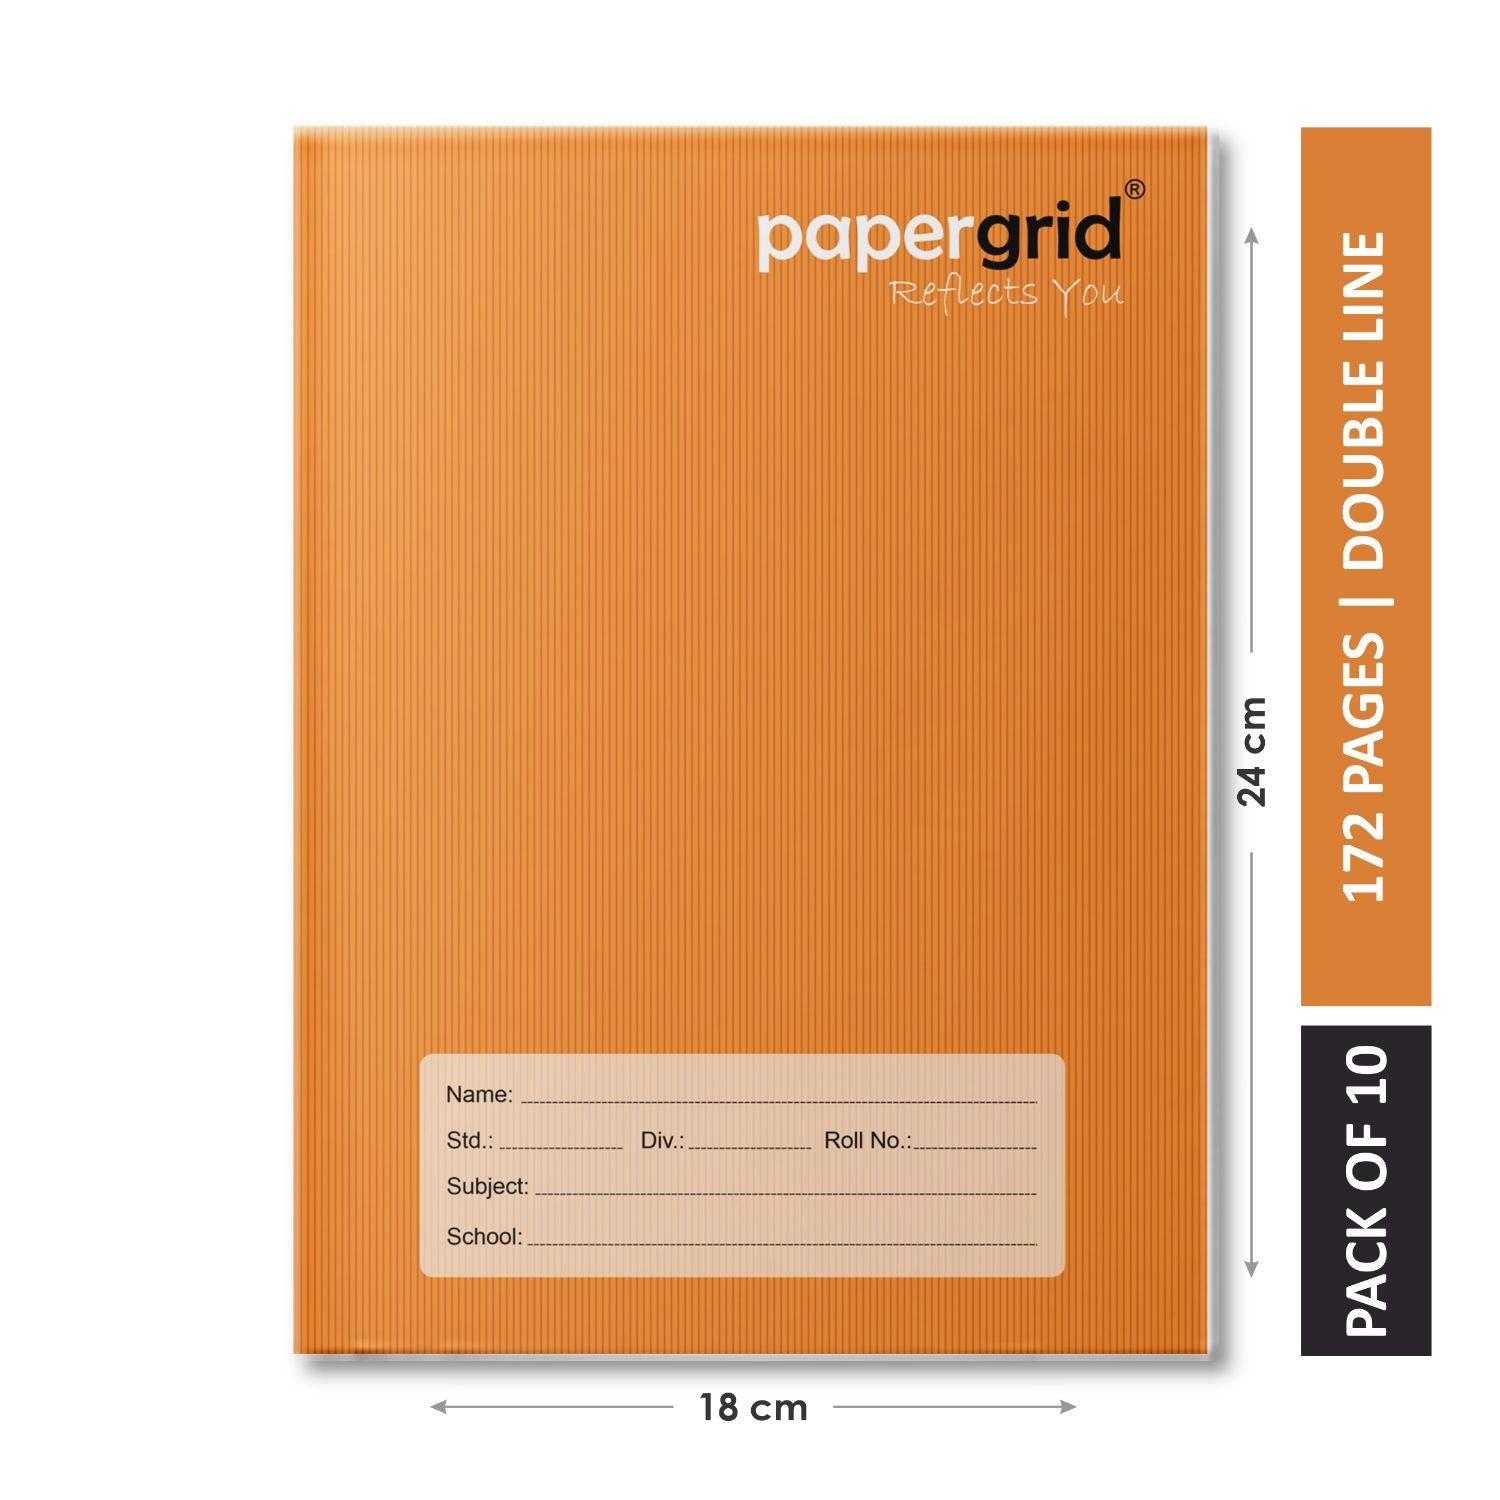 Papergrid Notebook - Brown Cover, King Size (24 cm x 18 cm), Double Line, 172 Pages, Soft Cover - Pack of 10